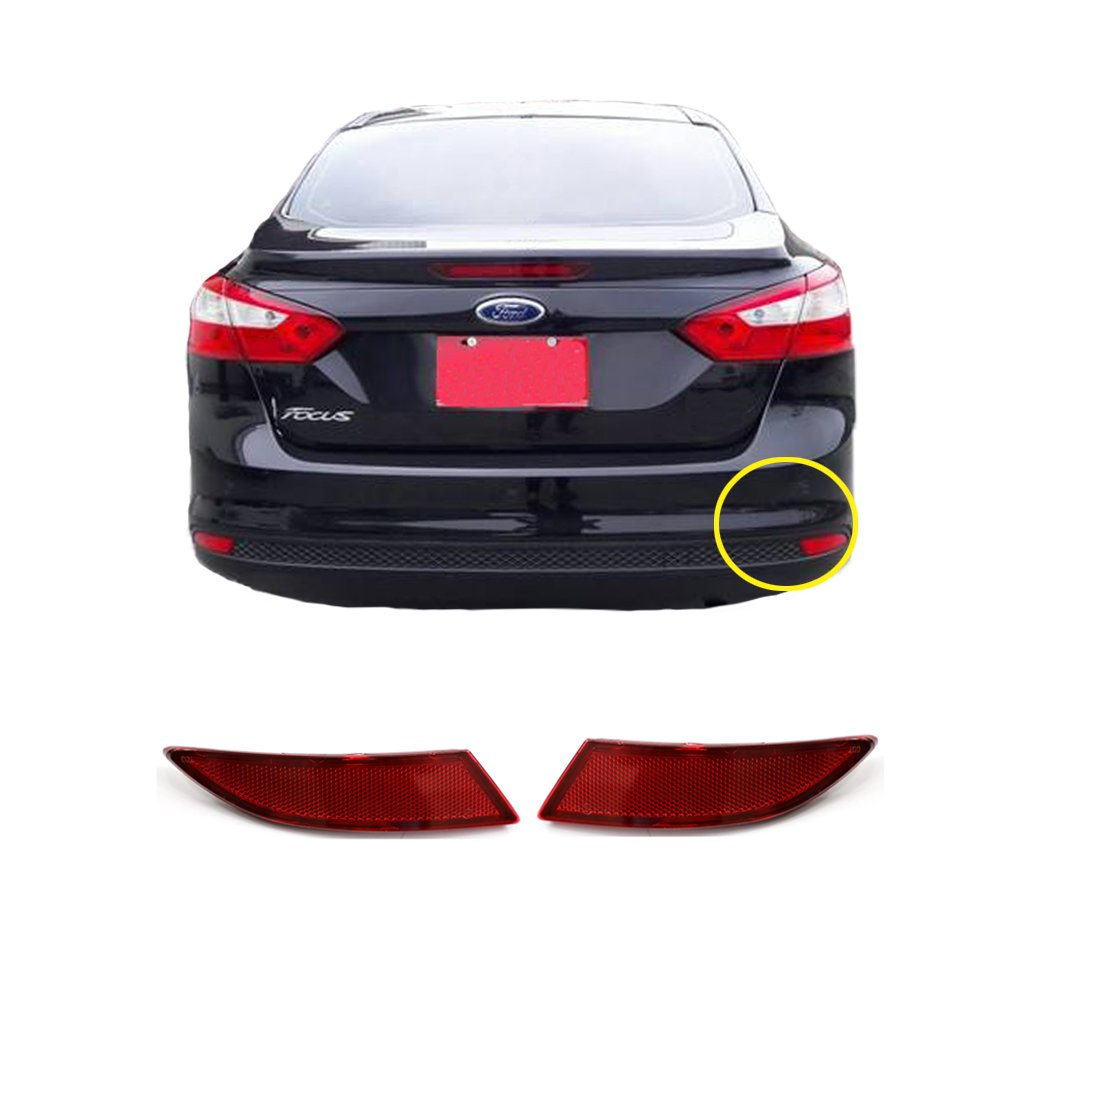 Vakabva BM5Z13A565A BM5Z13A565B Rear Bumper Reflector Set for 2012-2017 Ford Focus Sedan